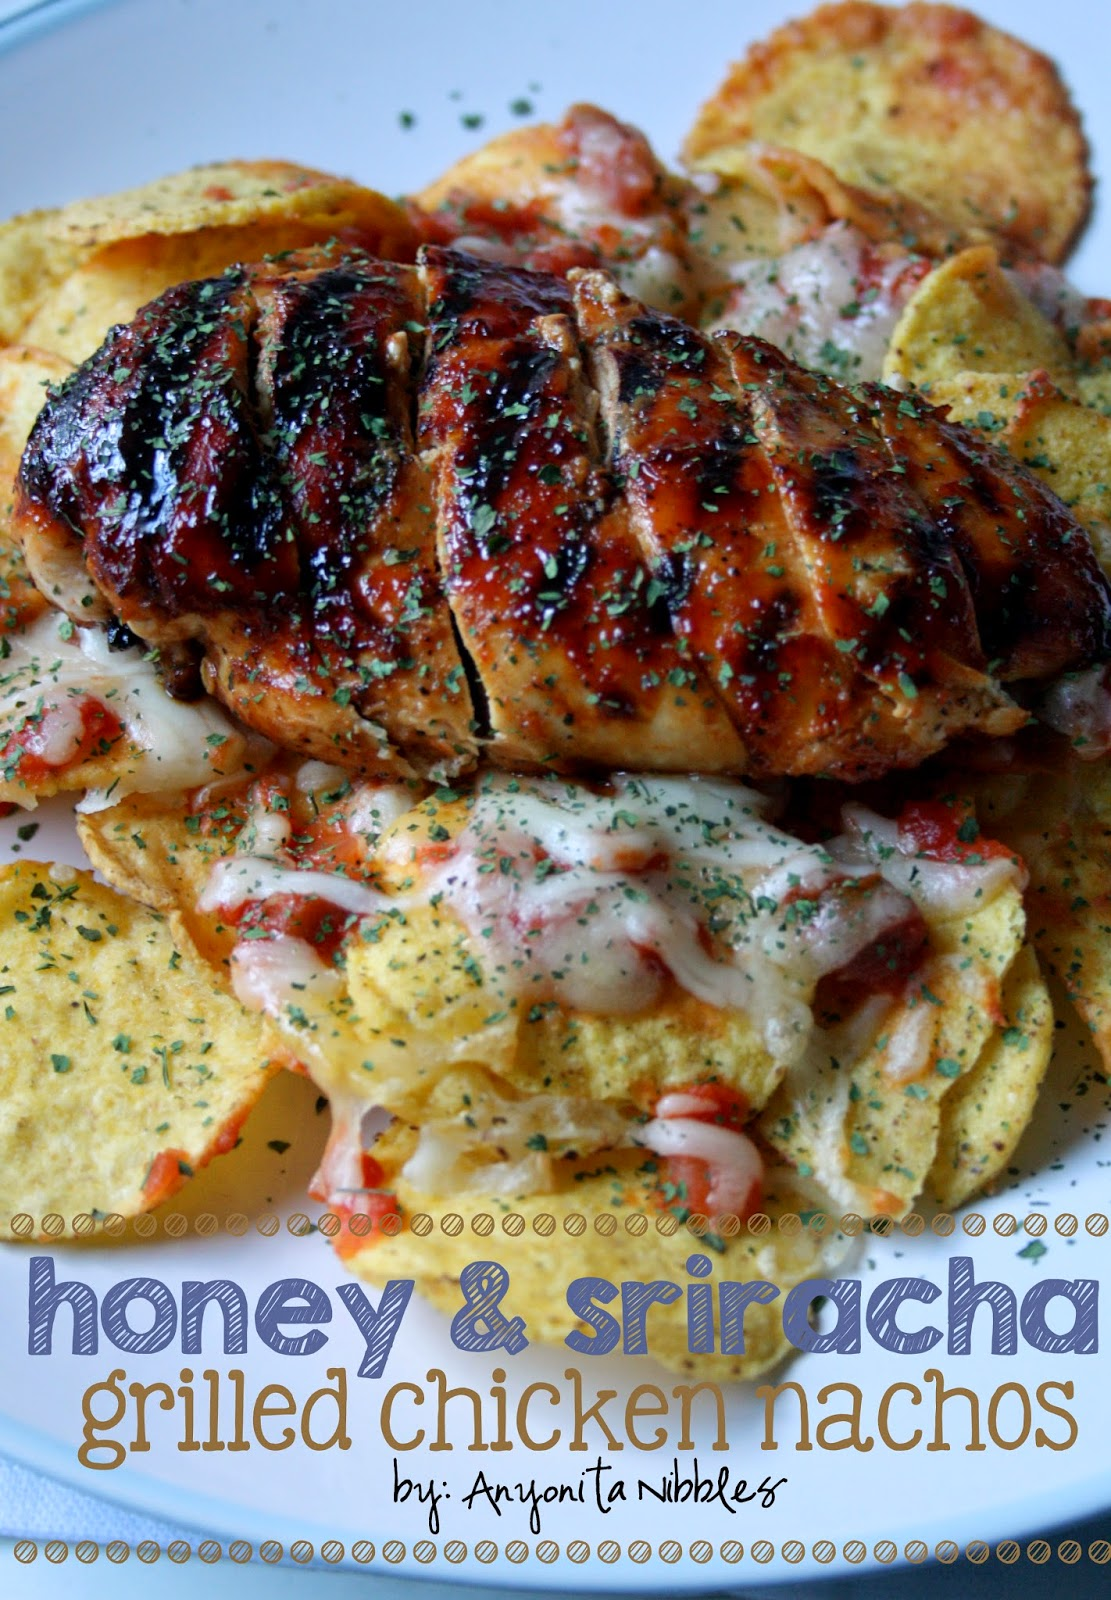 A gluten free dinner that's spicy and sweet, this grilled chicken is glazed with honey & Sriracha & served or nachos. From Anyonita Nibbles